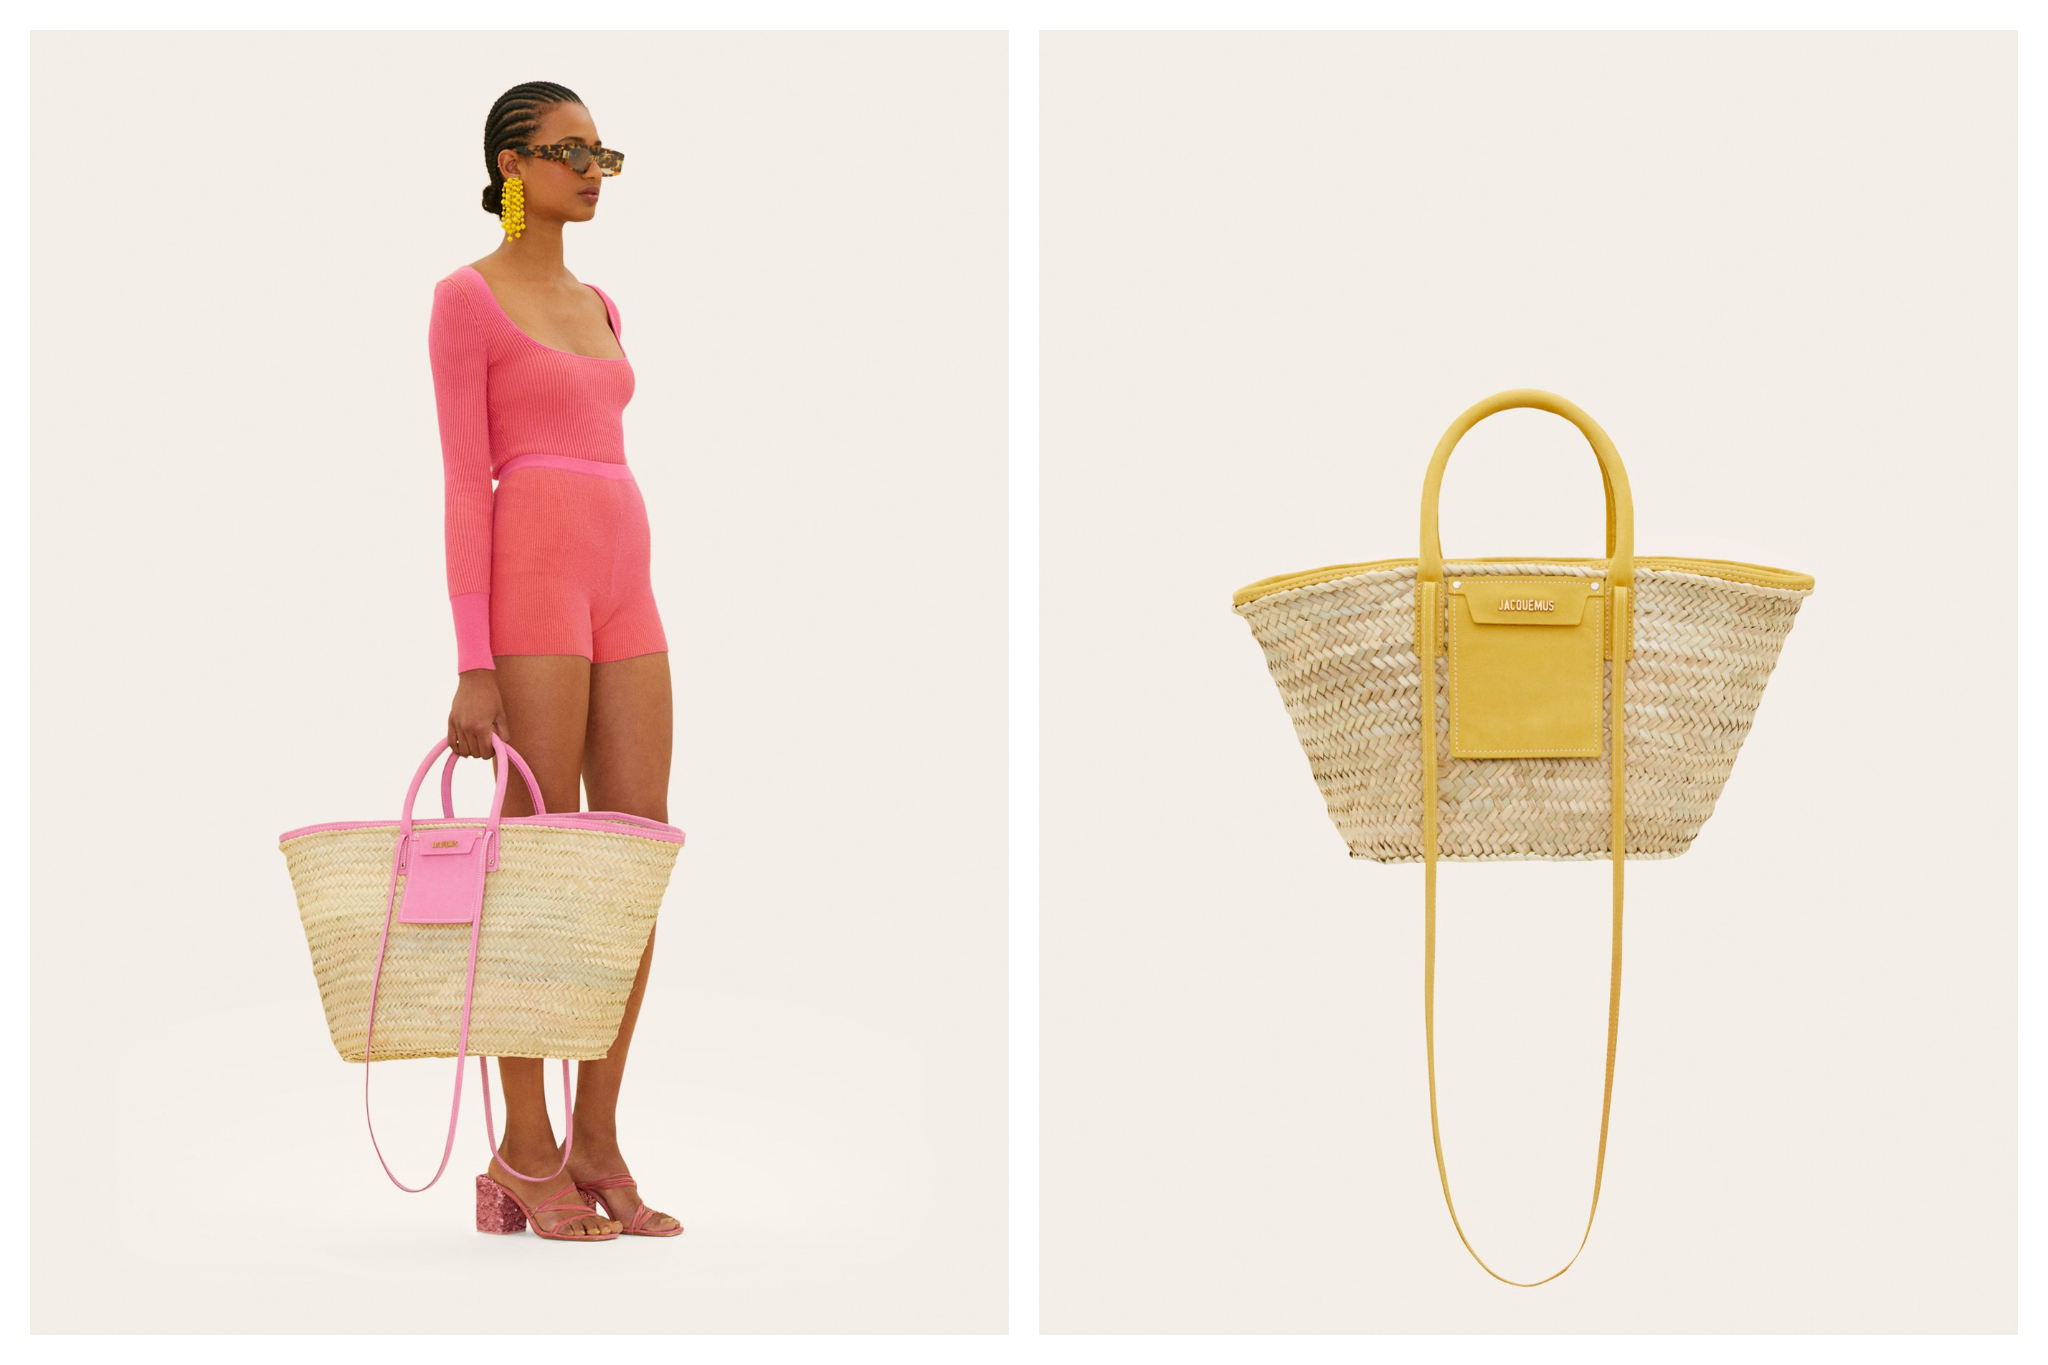 Left: A model, wearing a short pink onsie with long sleeves and styled with earrings, sunglasses and heels holds a large wicker bag with pink detailing from Jacquemus, Right: A large wicker summer bag with yellow detailing from Jacqemus